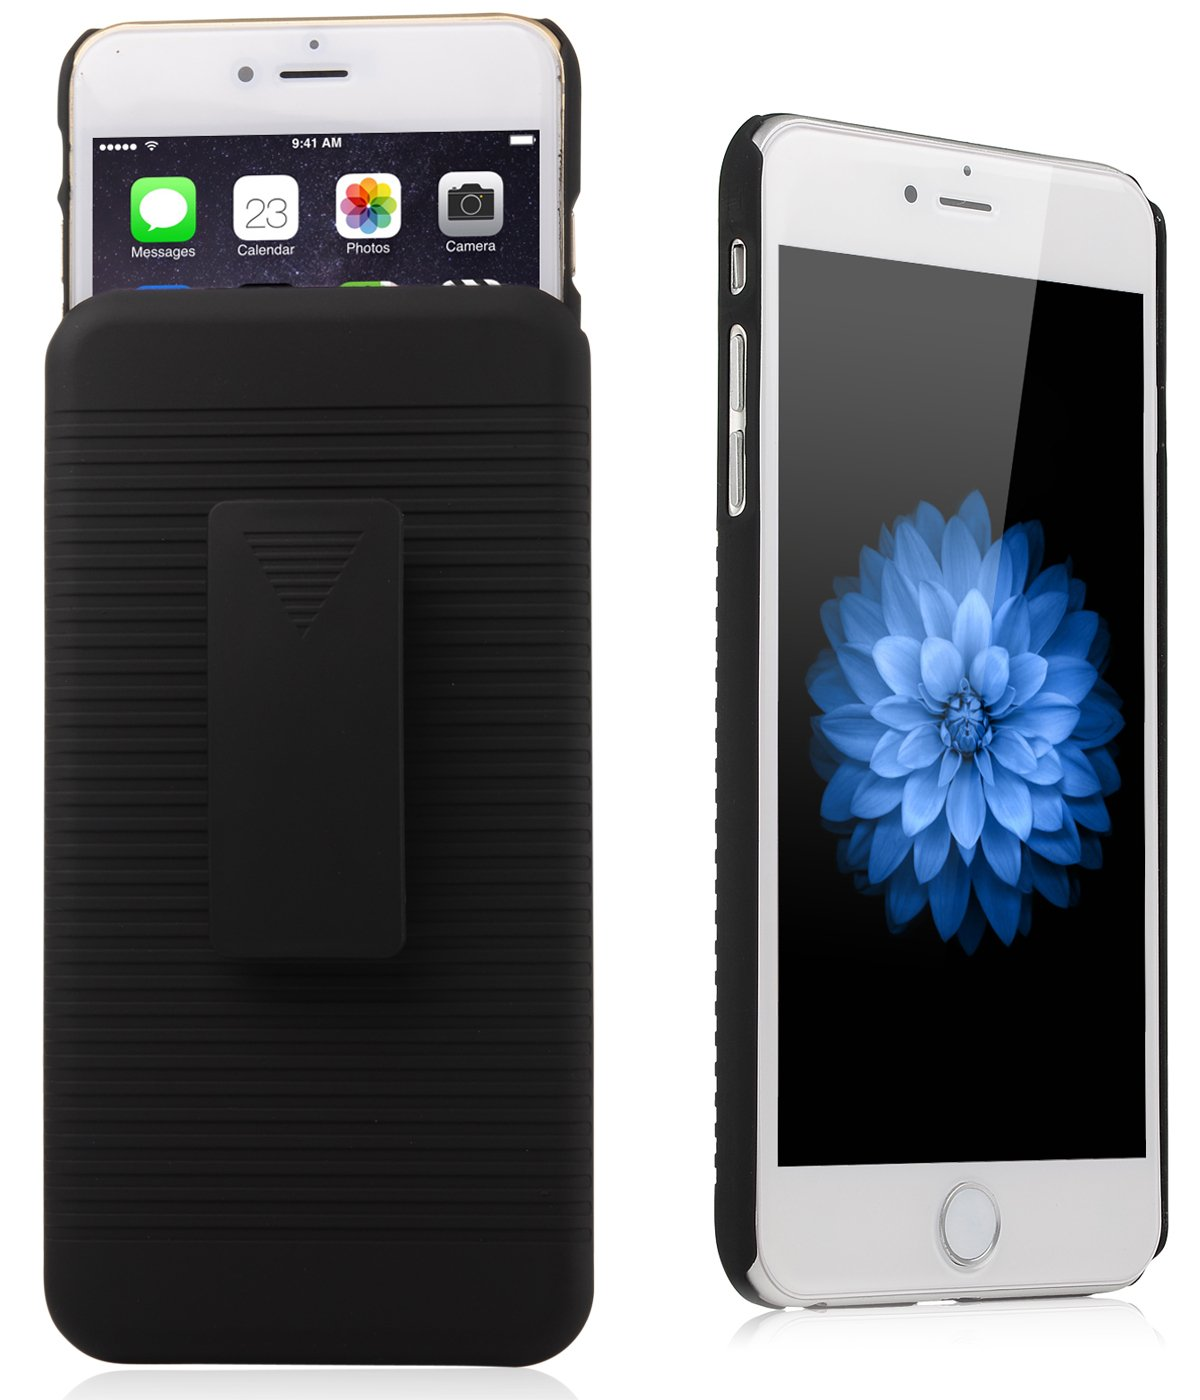 Top 10 Best Kickstand Case Covers For Iphone 6 Plus 2016 2017 On 9 Spigen Anti Shock With Stand Slim Armor Original Casing Gunmetal Ixcc Ascend Series Hard Pc Shell Heavy Duty Full Body Protection Slidable Cover Drop